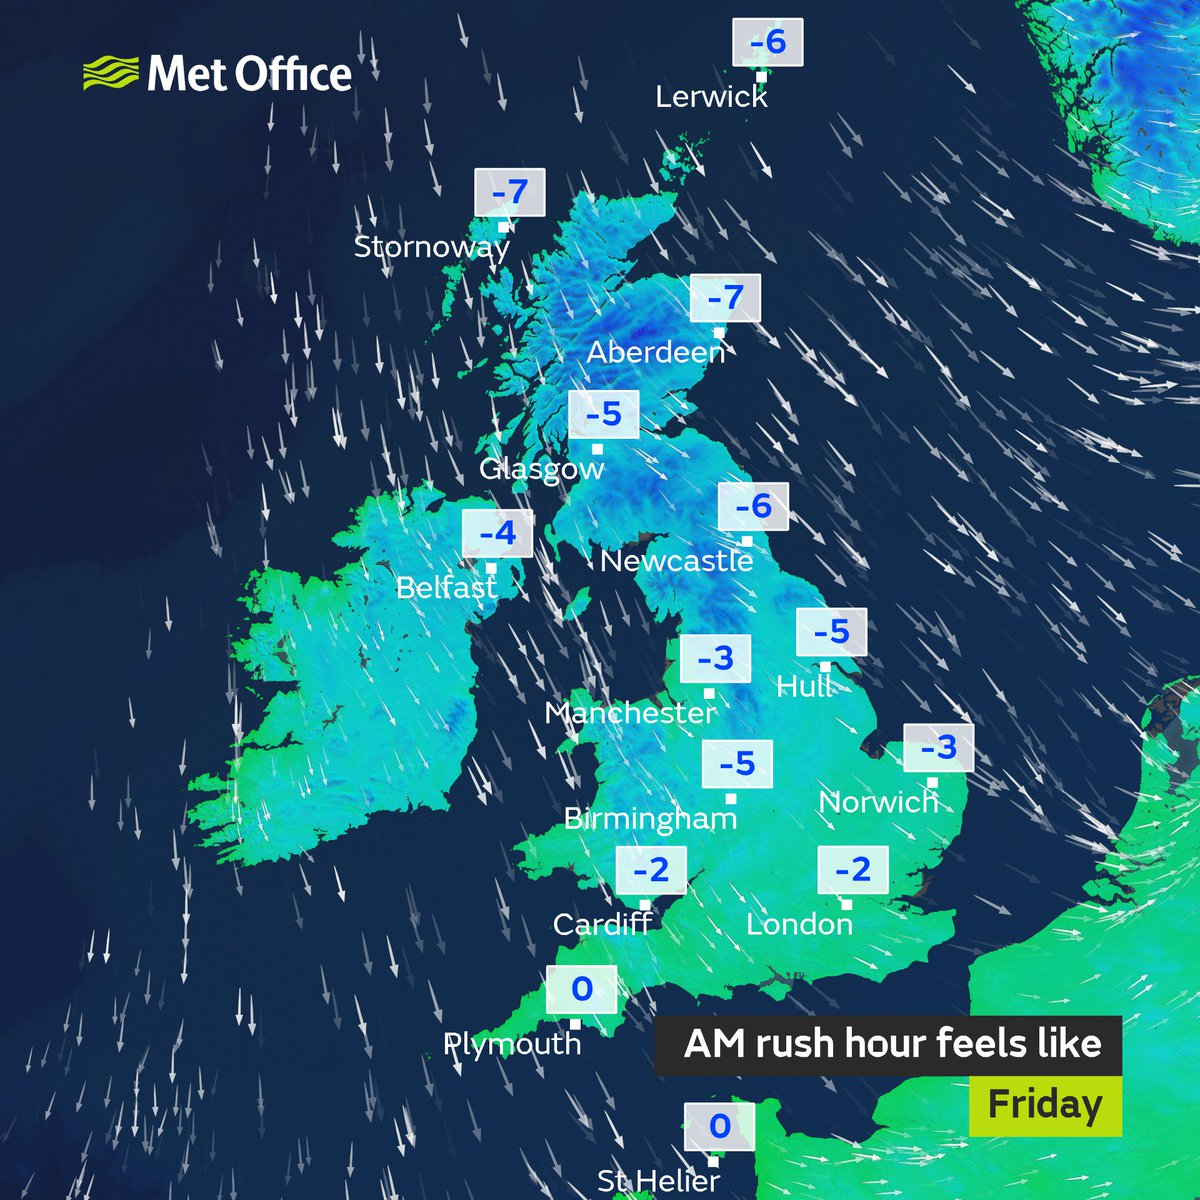 Whilst the strongest winds fro #StormCarolinem  have passed, it will still be windy for the morning rush hour. With cold arctic air and strong winds it's going to feel ve #coldry  out